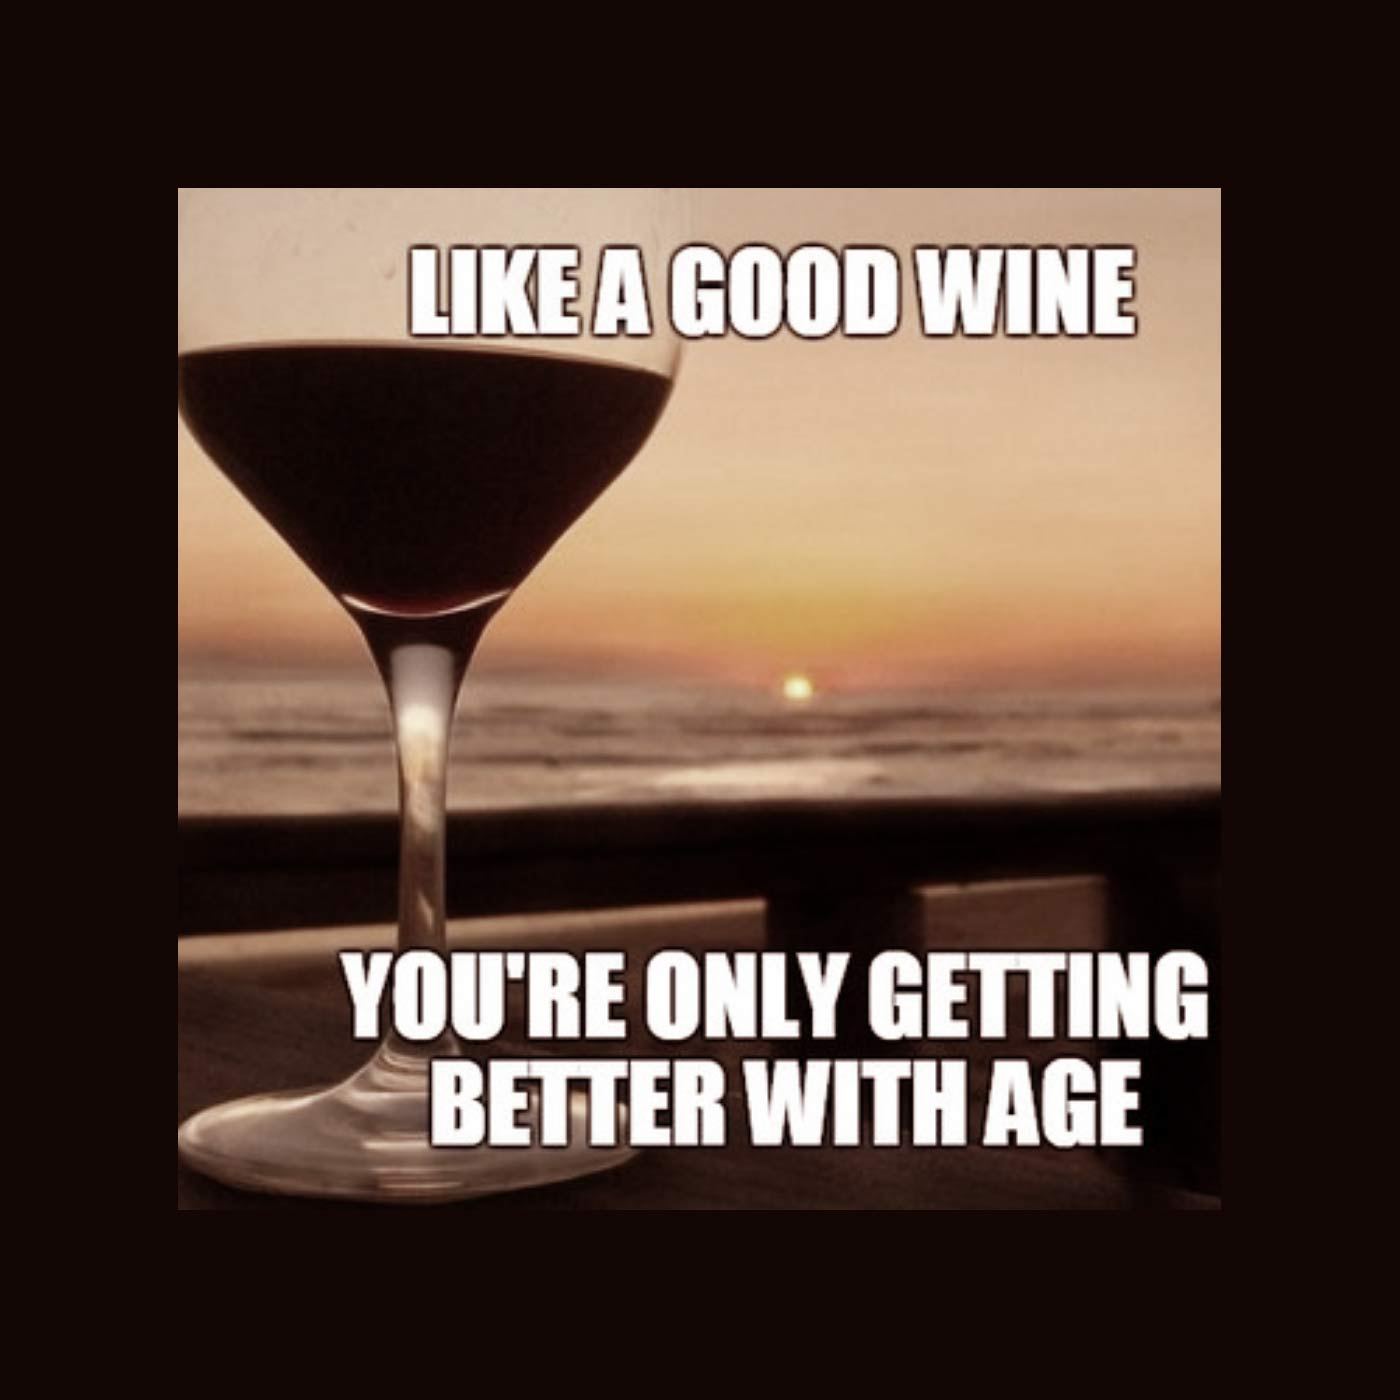 Does Wine REALLY Get Better With Age? - #003